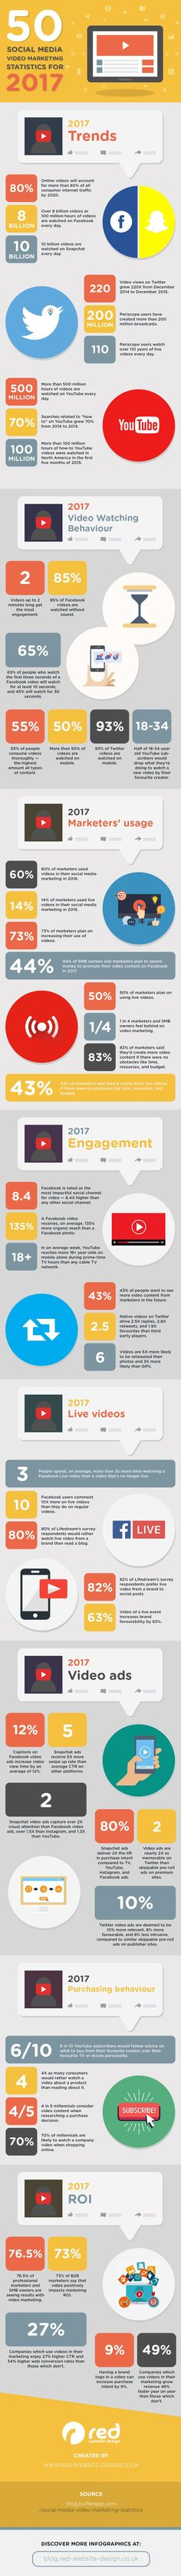 50 Social Media Video Marketing Stats for 2017    Are you considering adding video to your 2017 social media marketing mix? Need some background stats and facts to help form your strategy?    We share the key info you need to know in this infographic.